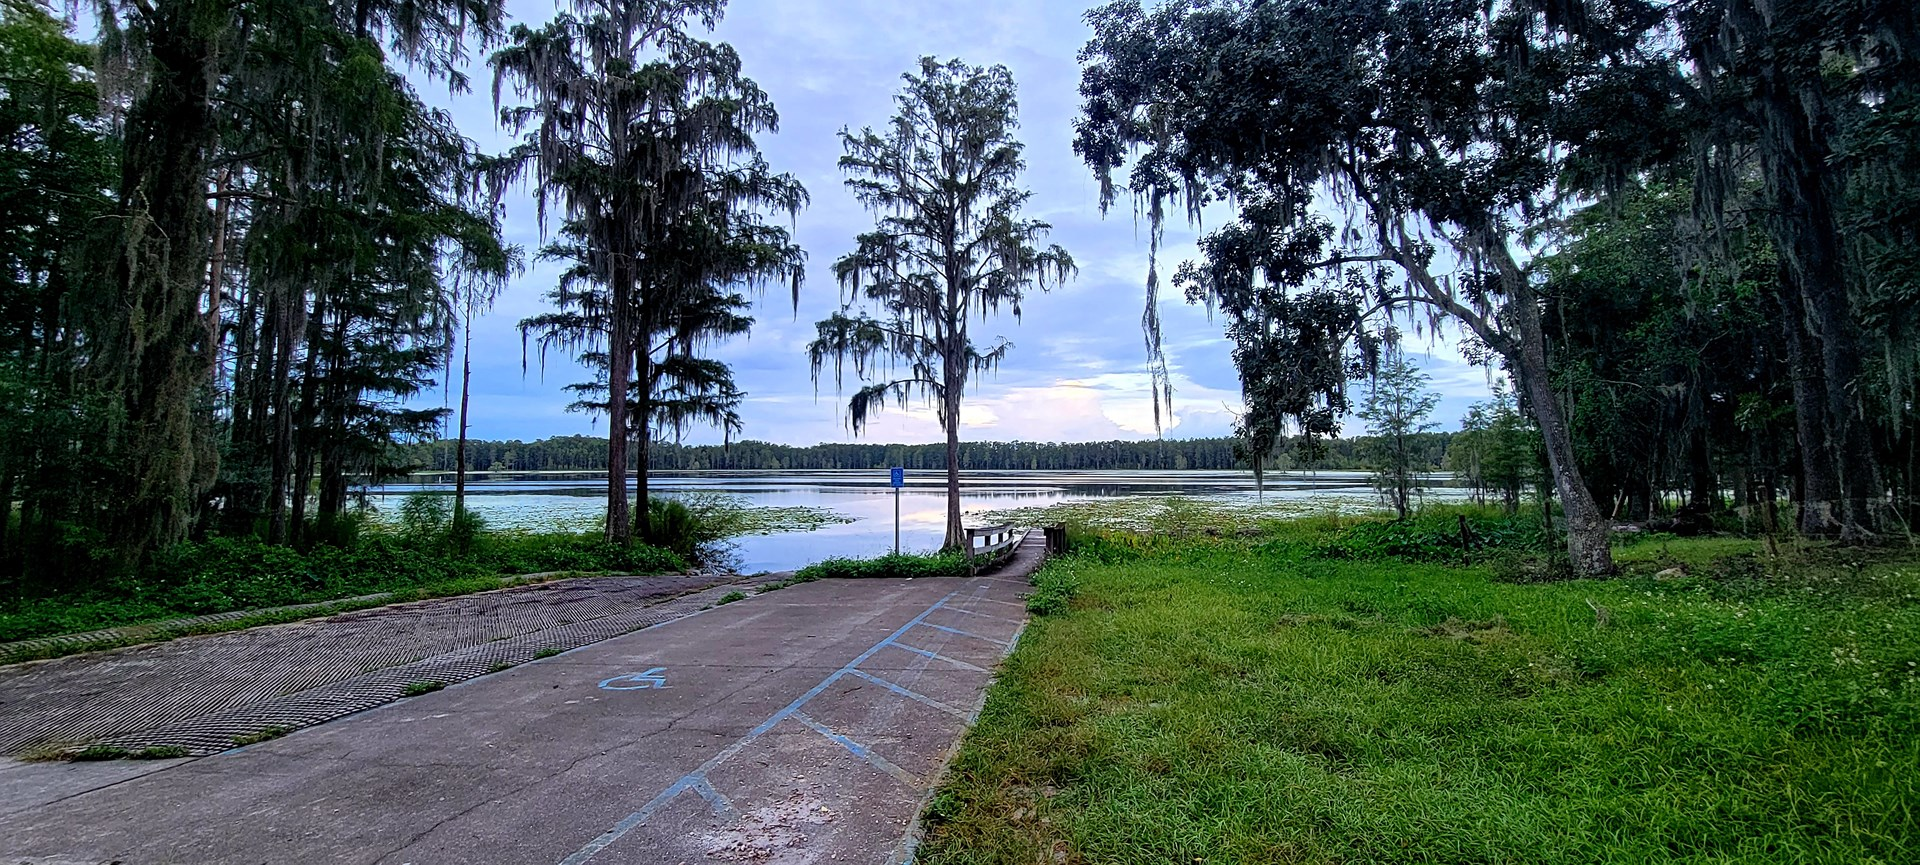 BREATHTAKING LAKE FRONT 7 AC PROPERTY FOR ONLY $105,000!